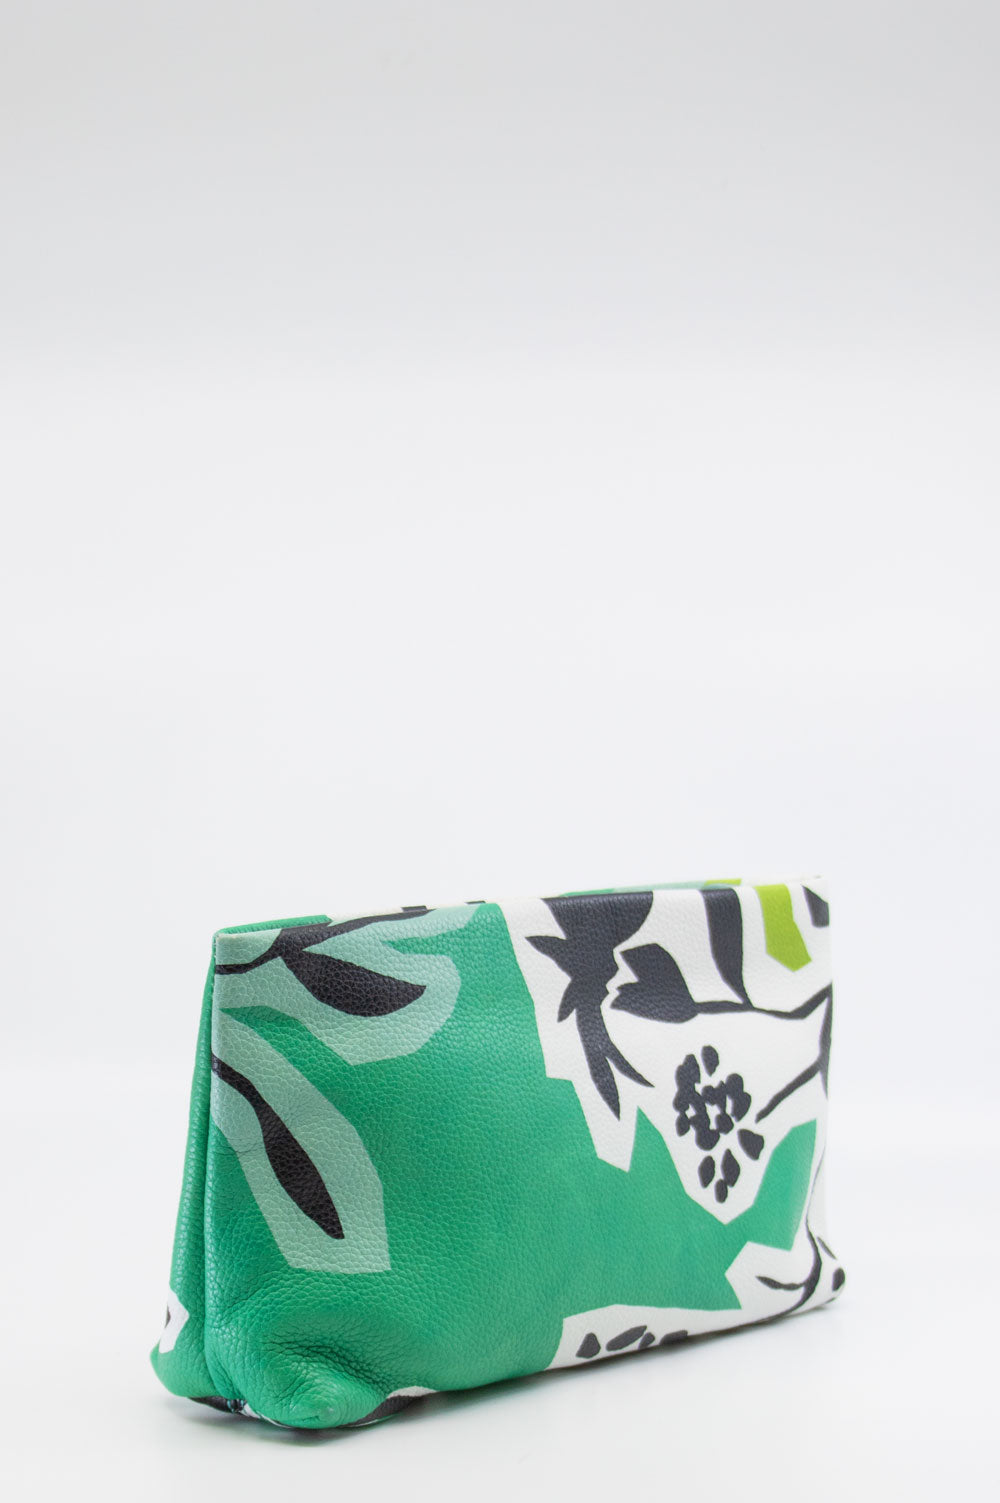 BURBERRY PRORSUM Wild Flowers Clutch